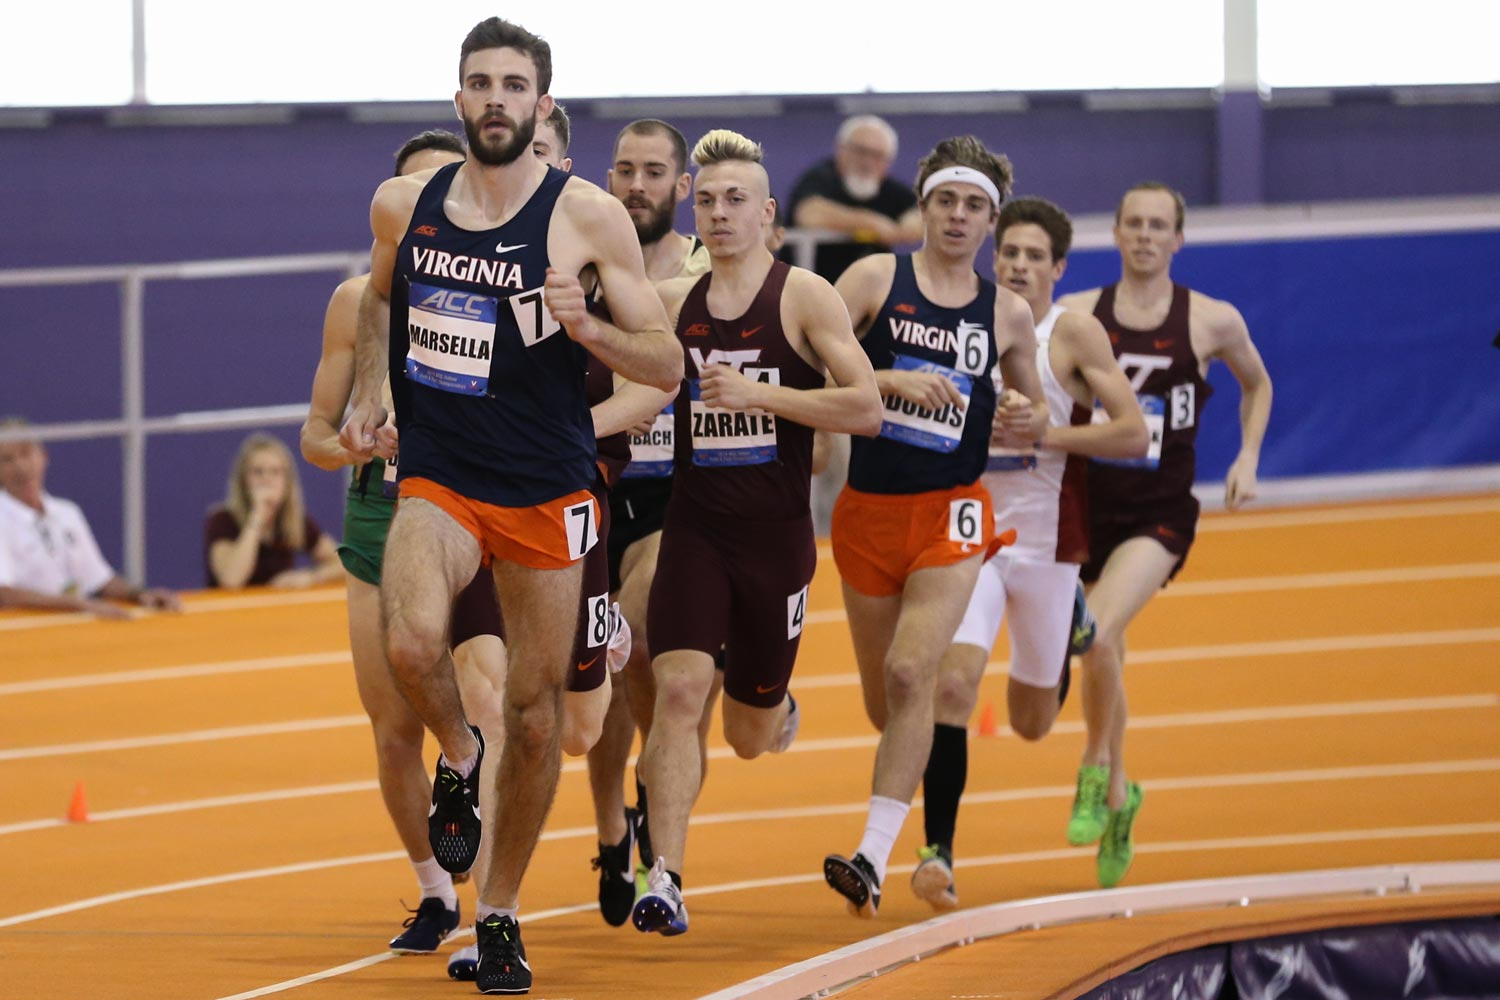 A moped accident nearly ended Marsella's running career when he was a first-year. (Photo by Jim Daves, University Athletics)